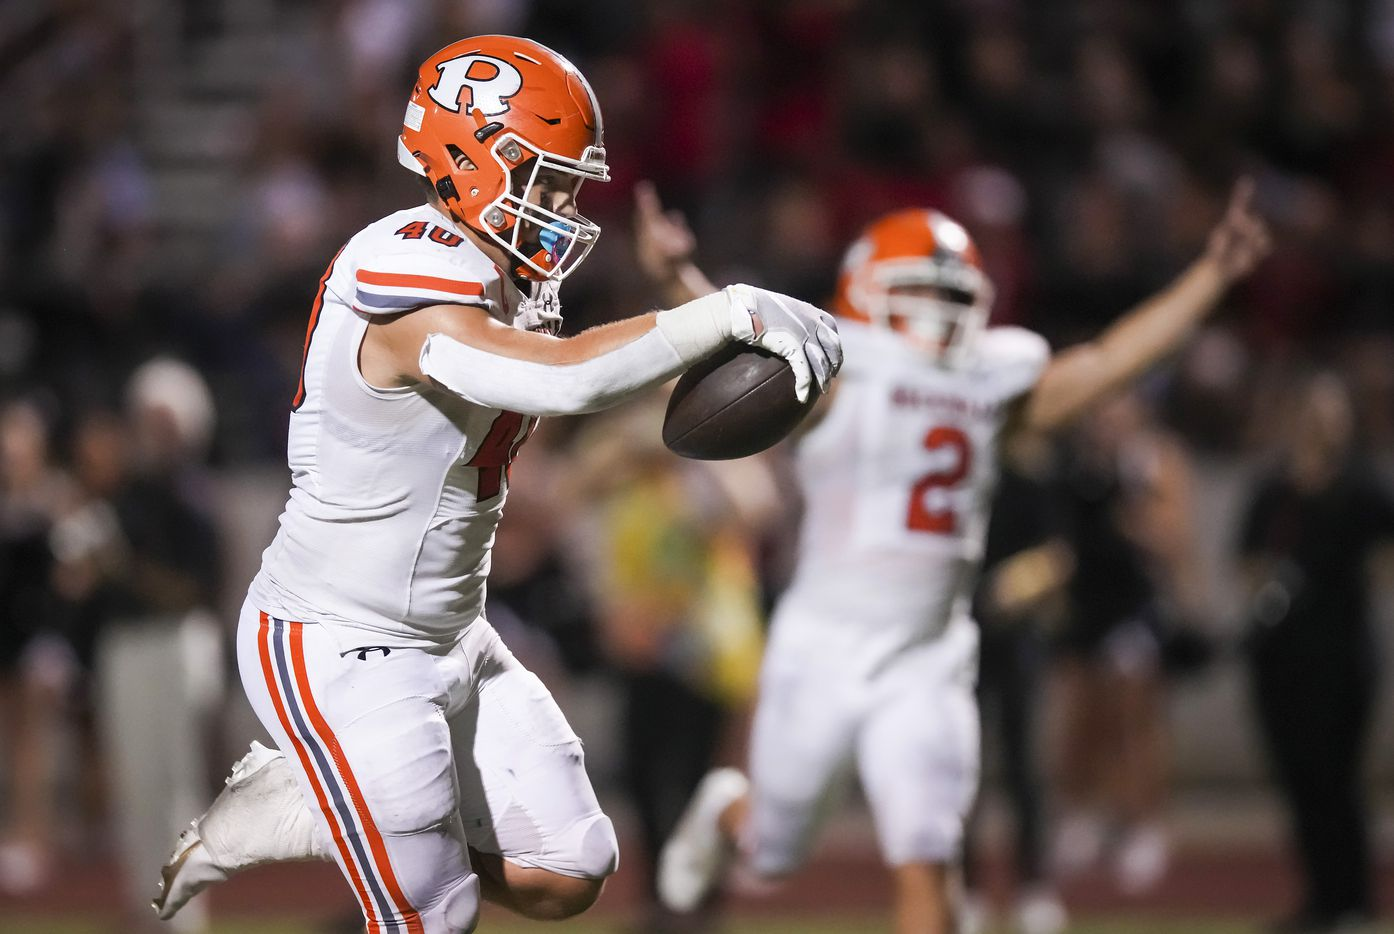 Rockwall tight end Brennan Ray (40) scores on a 21-yard touchdown pass during the second half of a District 10-6A high school football game against Rockwall-Heath at Wilkerson-Sanders Stadium on Friday, Sept. 24, 2021, in Rockwall.  Rockwall-Heath won the game 79-71 in double overtime.